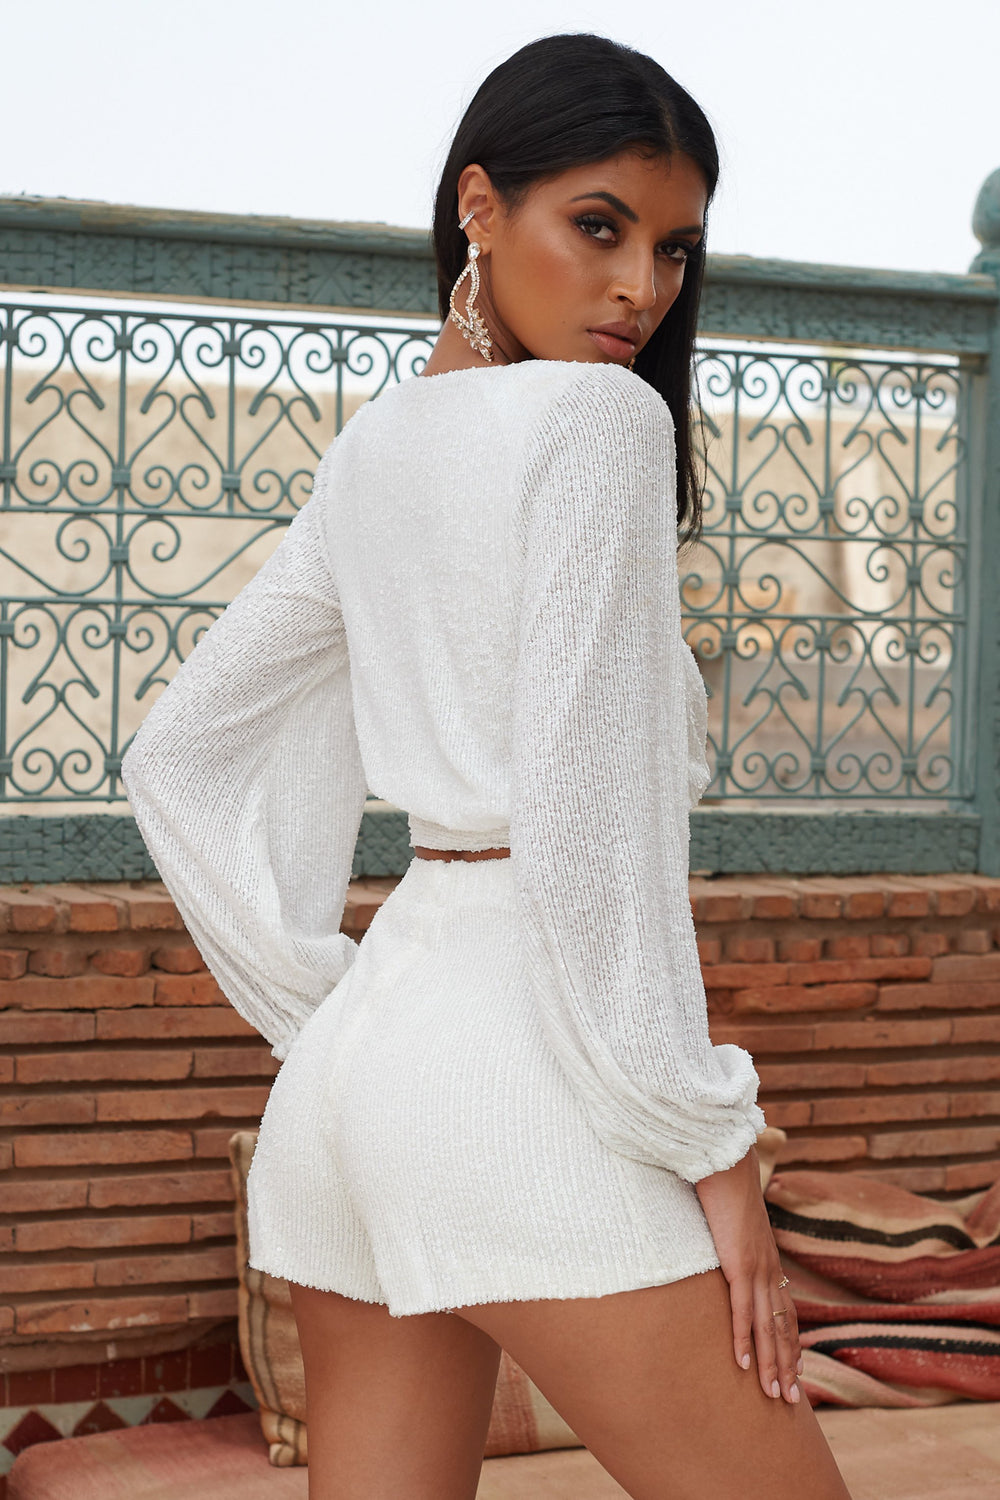 White Sequin Tailored Shorts                      – Club L London - USA